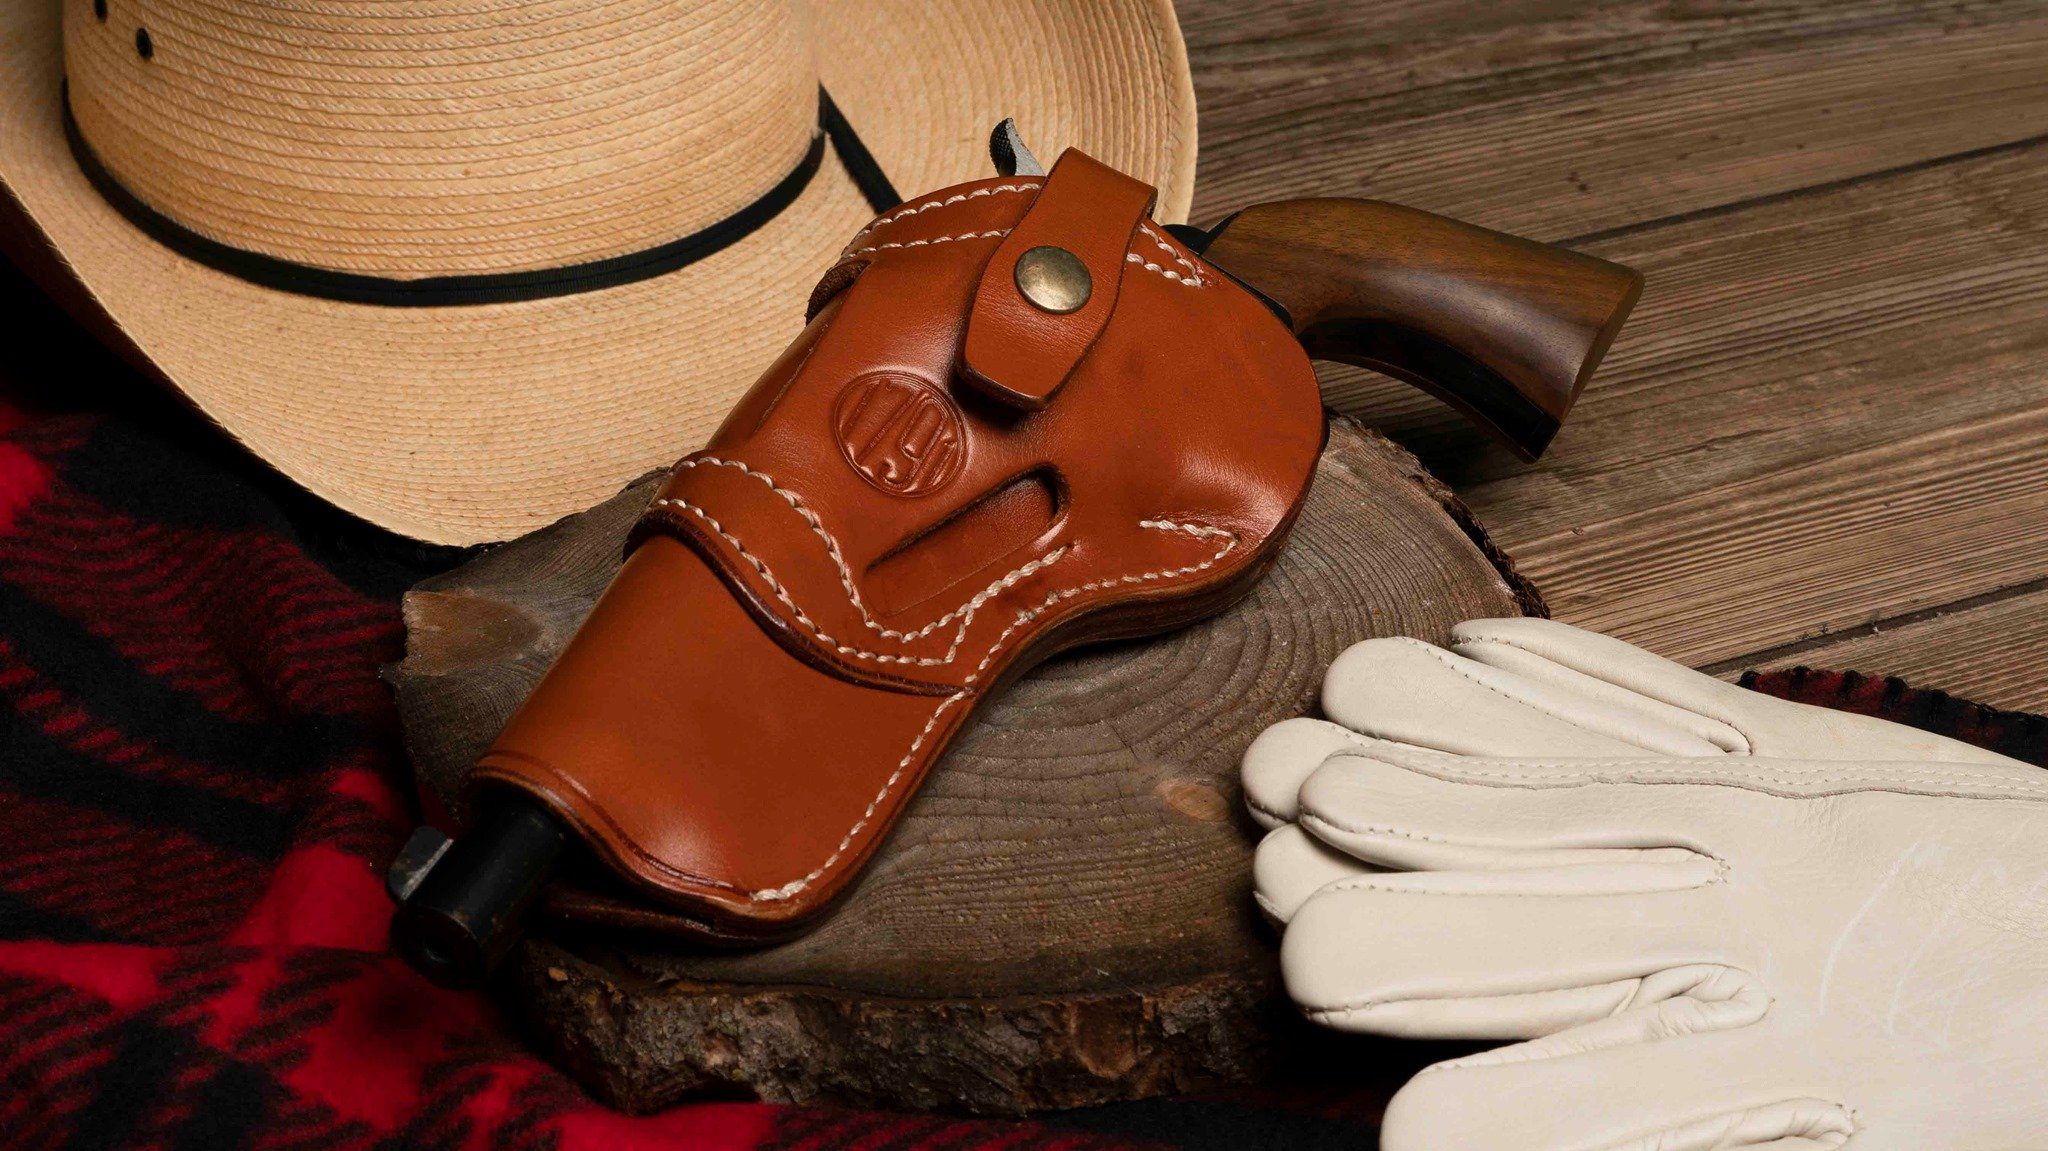 New Single Action Revolver Holster from 1791 Gunleather